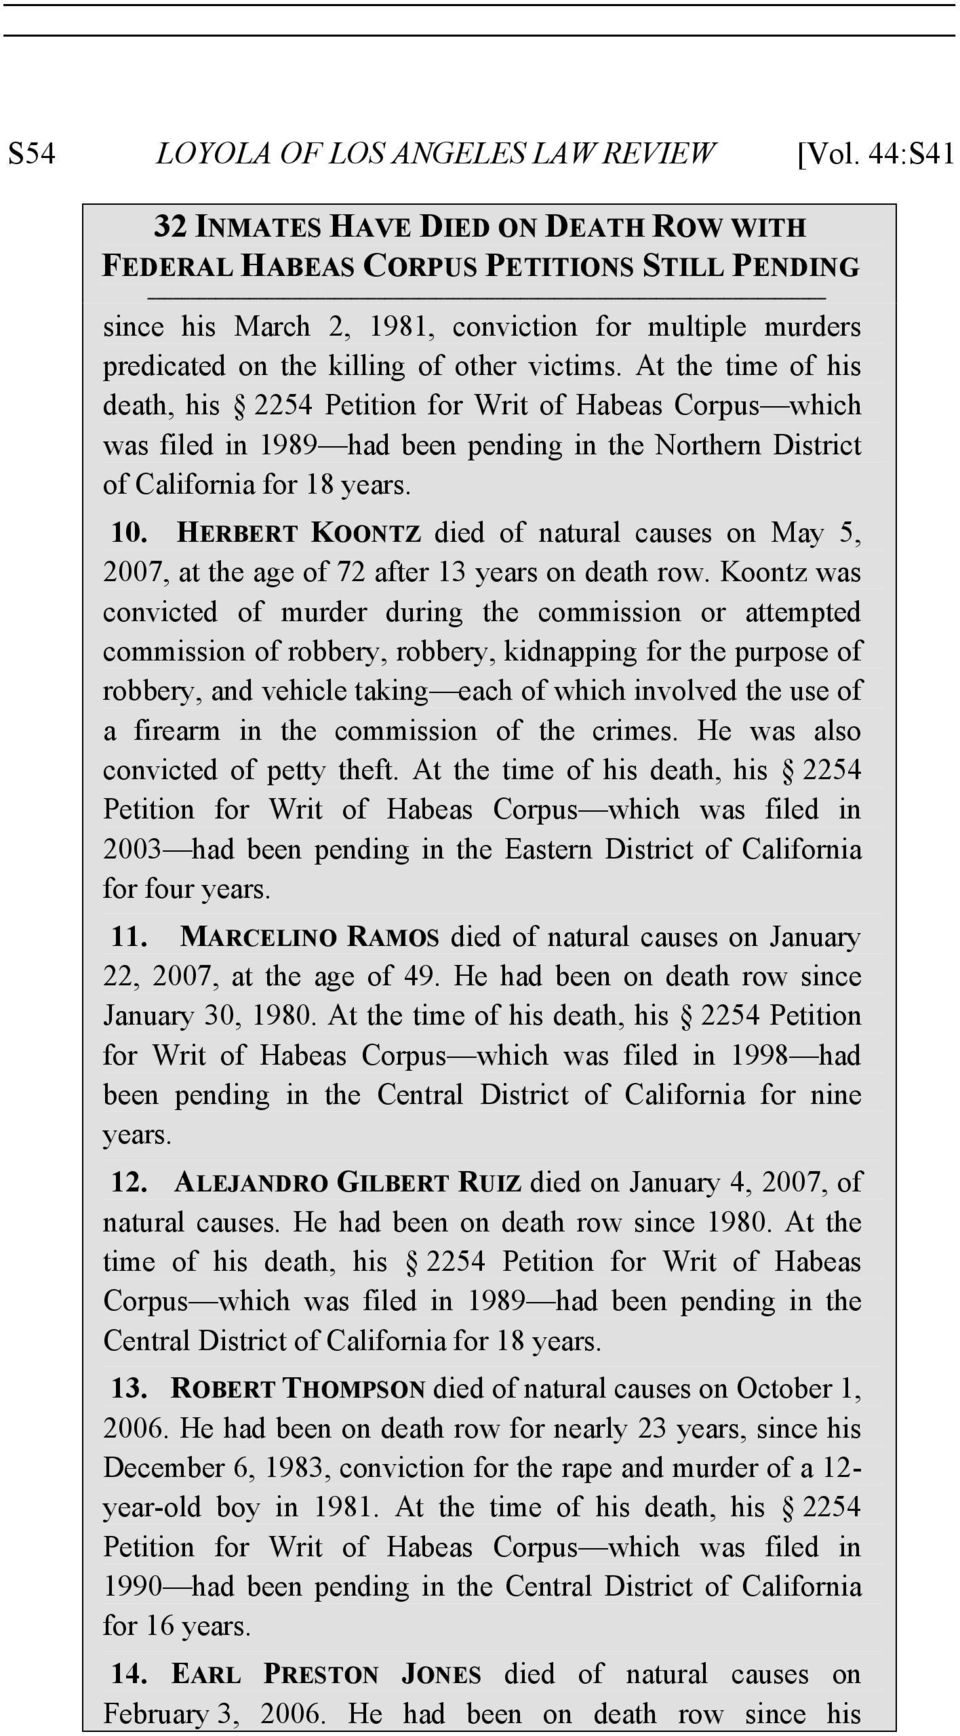 At the time of his death, his 2254 Petition for Writ of Habeas Corpus which was filed in 1989 had been pending in the Northern District of California for 18 years. 10.